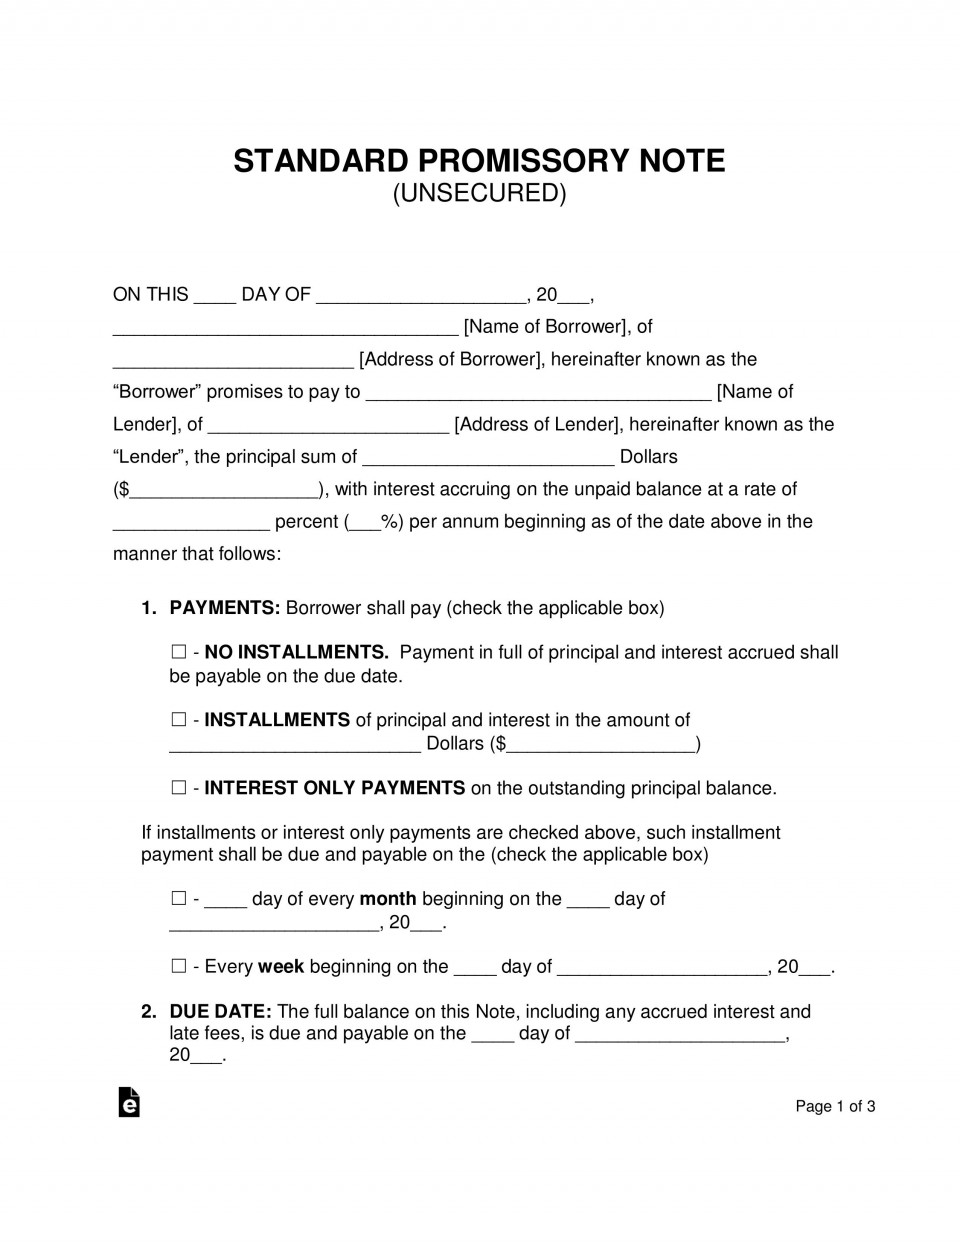 008 Sensational Promissory Note Template Word Image  Form Document Free Sample960